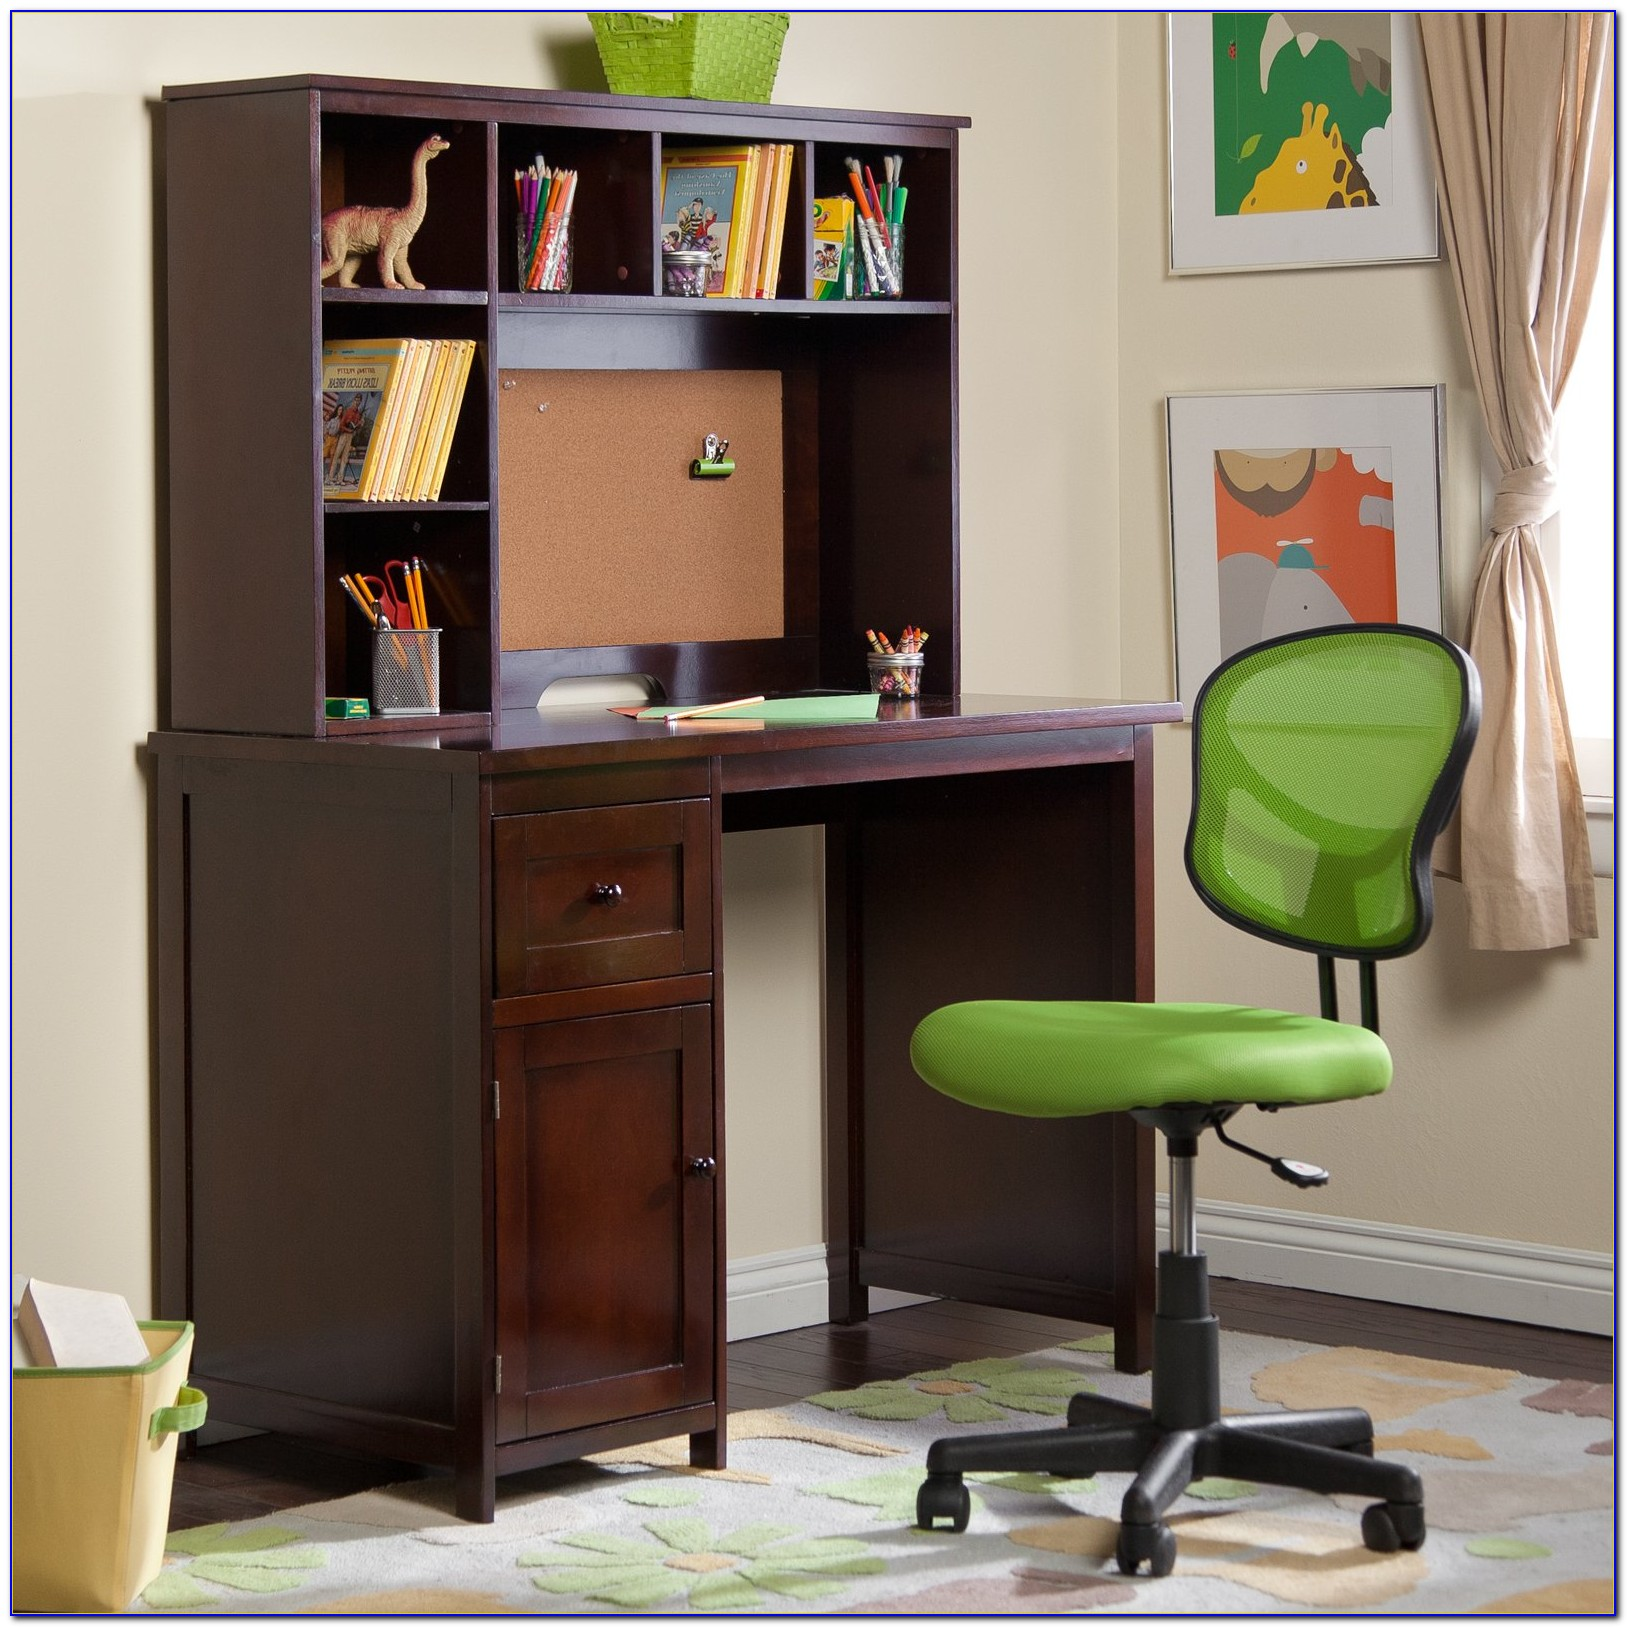 student desks for bedroom australia desk home design 17441 | student desks for bedroom australia